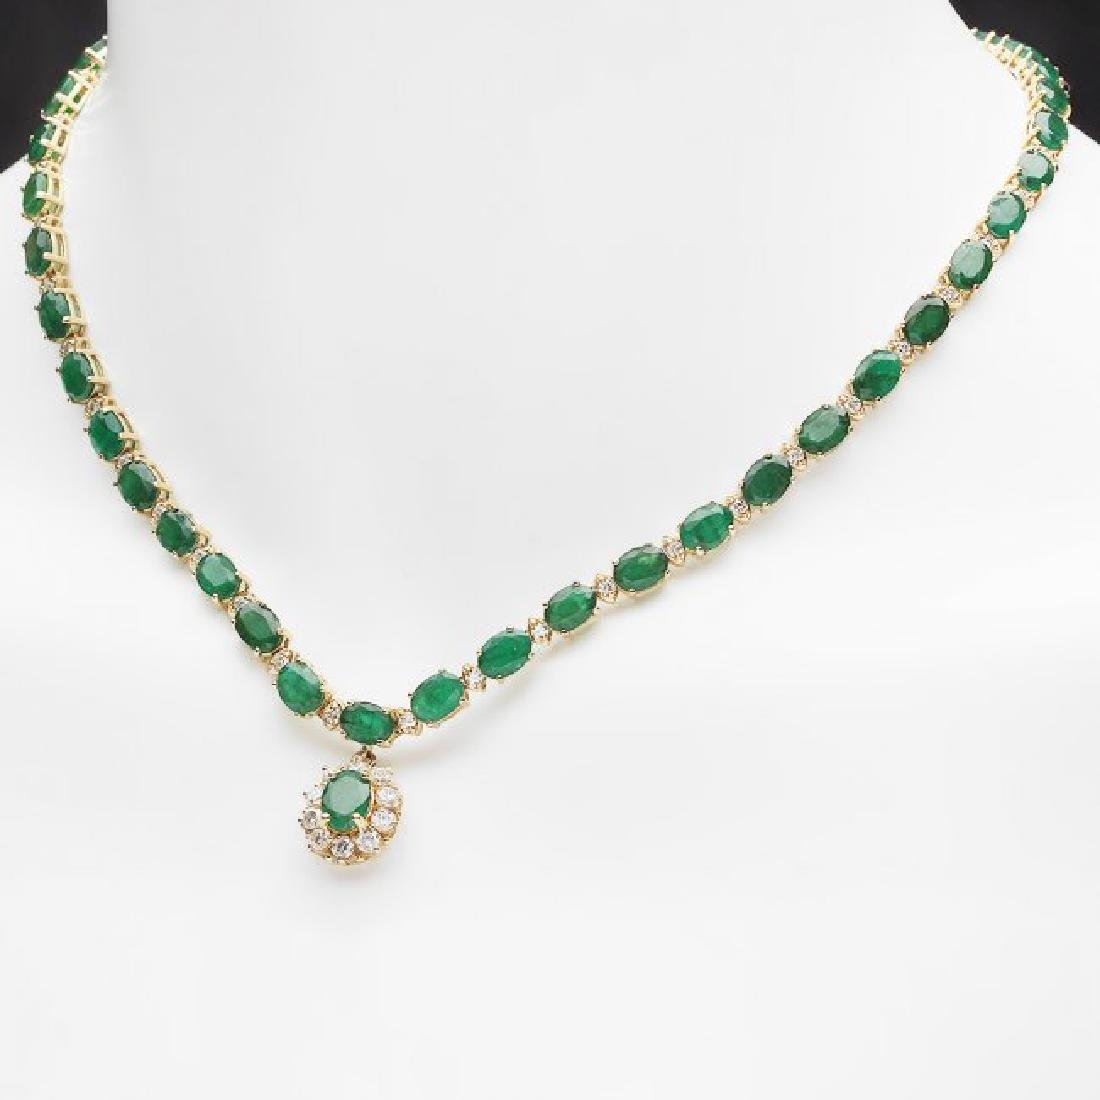 14k Gold 24.25ct Emerald 2.00ct Diamond Necklace - 4